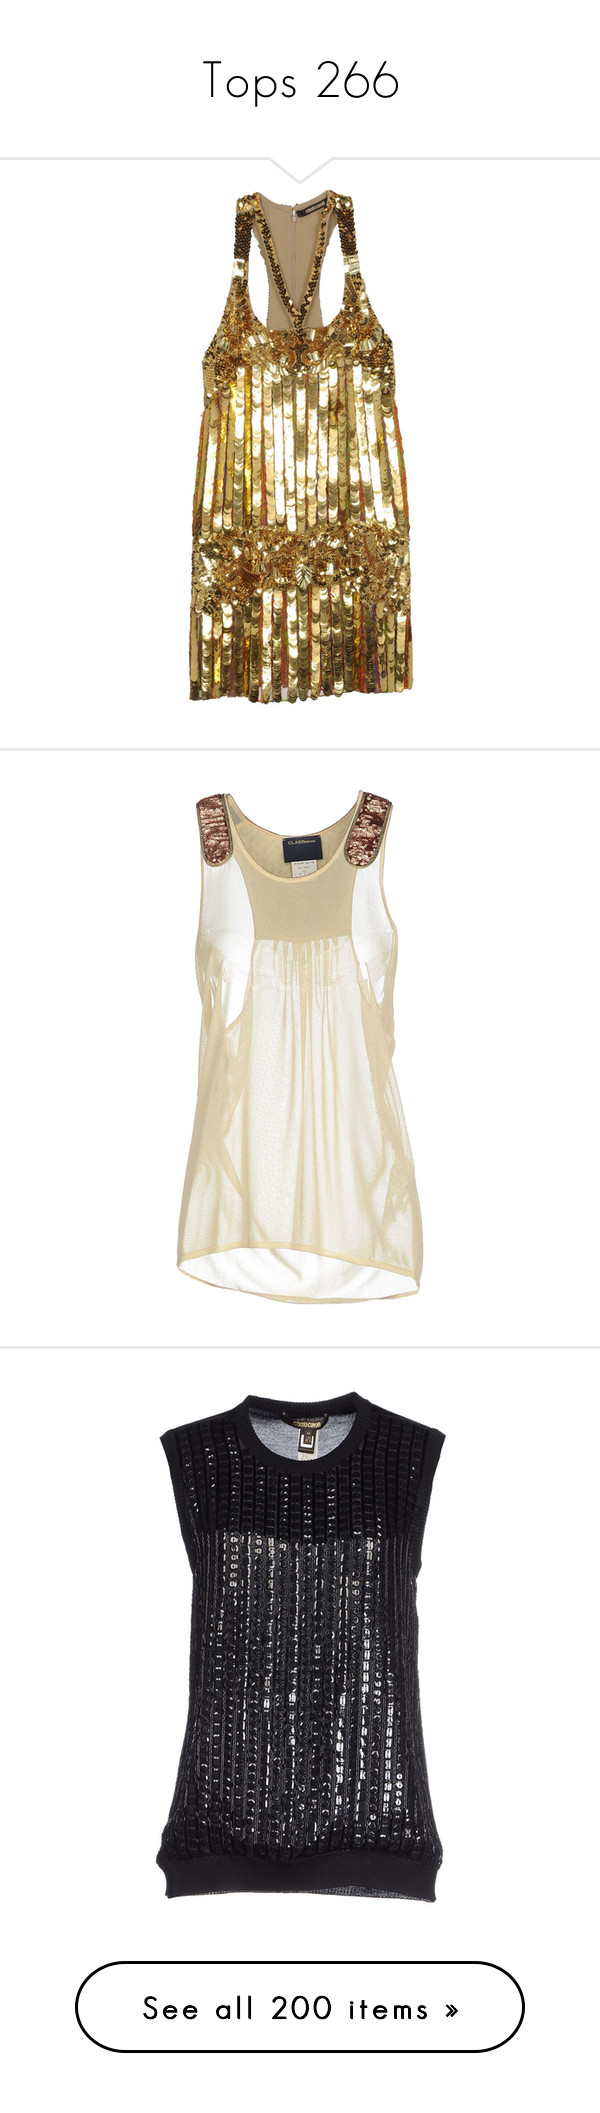 """""""Tops 266"""" by singlemom ❤ liked on Polyvore featuring tops, ivory, roberto cavalli, sleeveless tops, ivory sleeveless top, roberto cavalli tops, ivory top, dresses, gold and beaded sequin dress"""